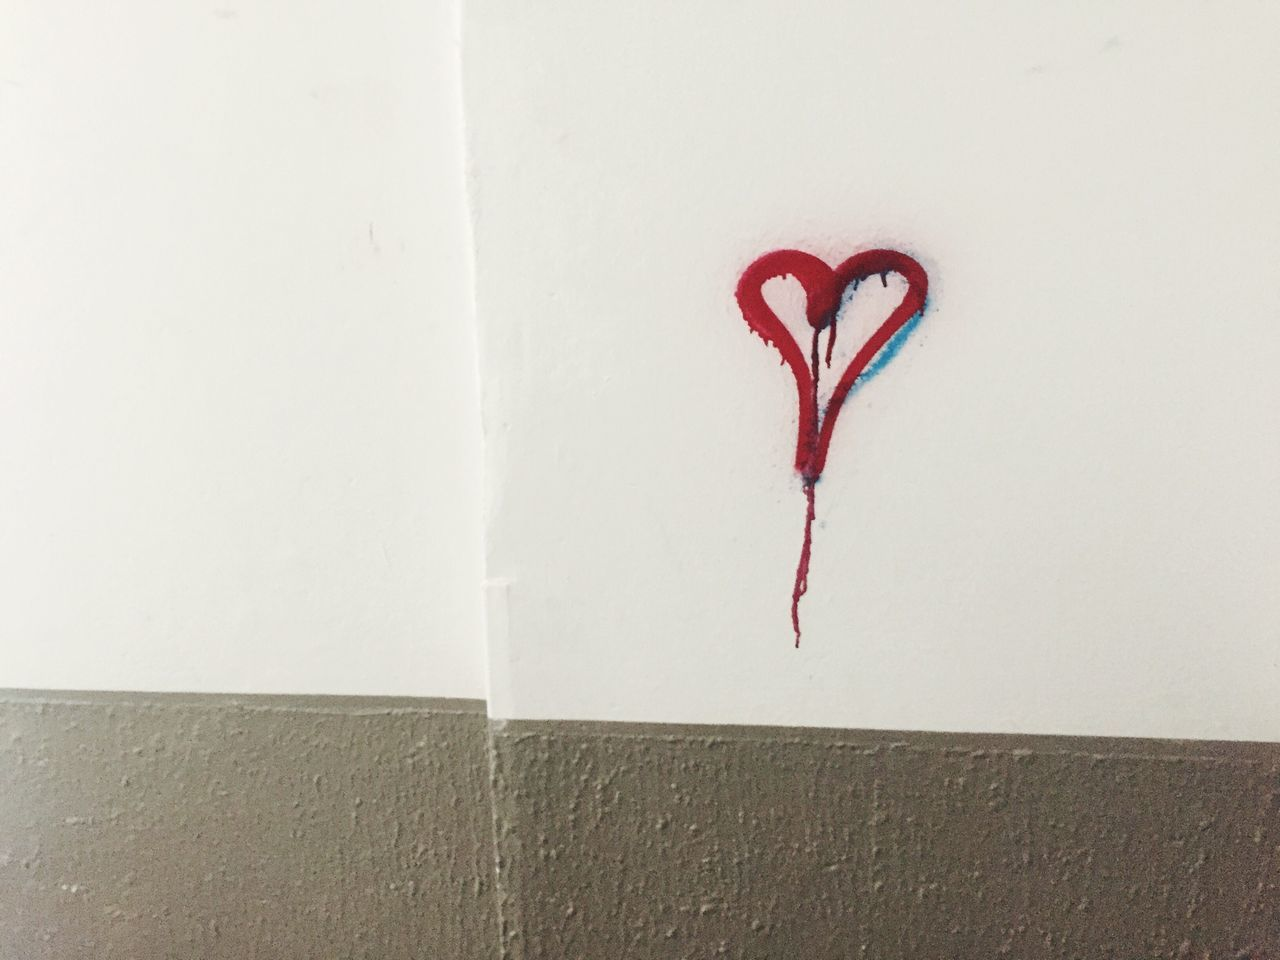 EyeEm Selects Wall - Building Feature No People Day Architecture Graffiti Heart Sign On Wall love lost love